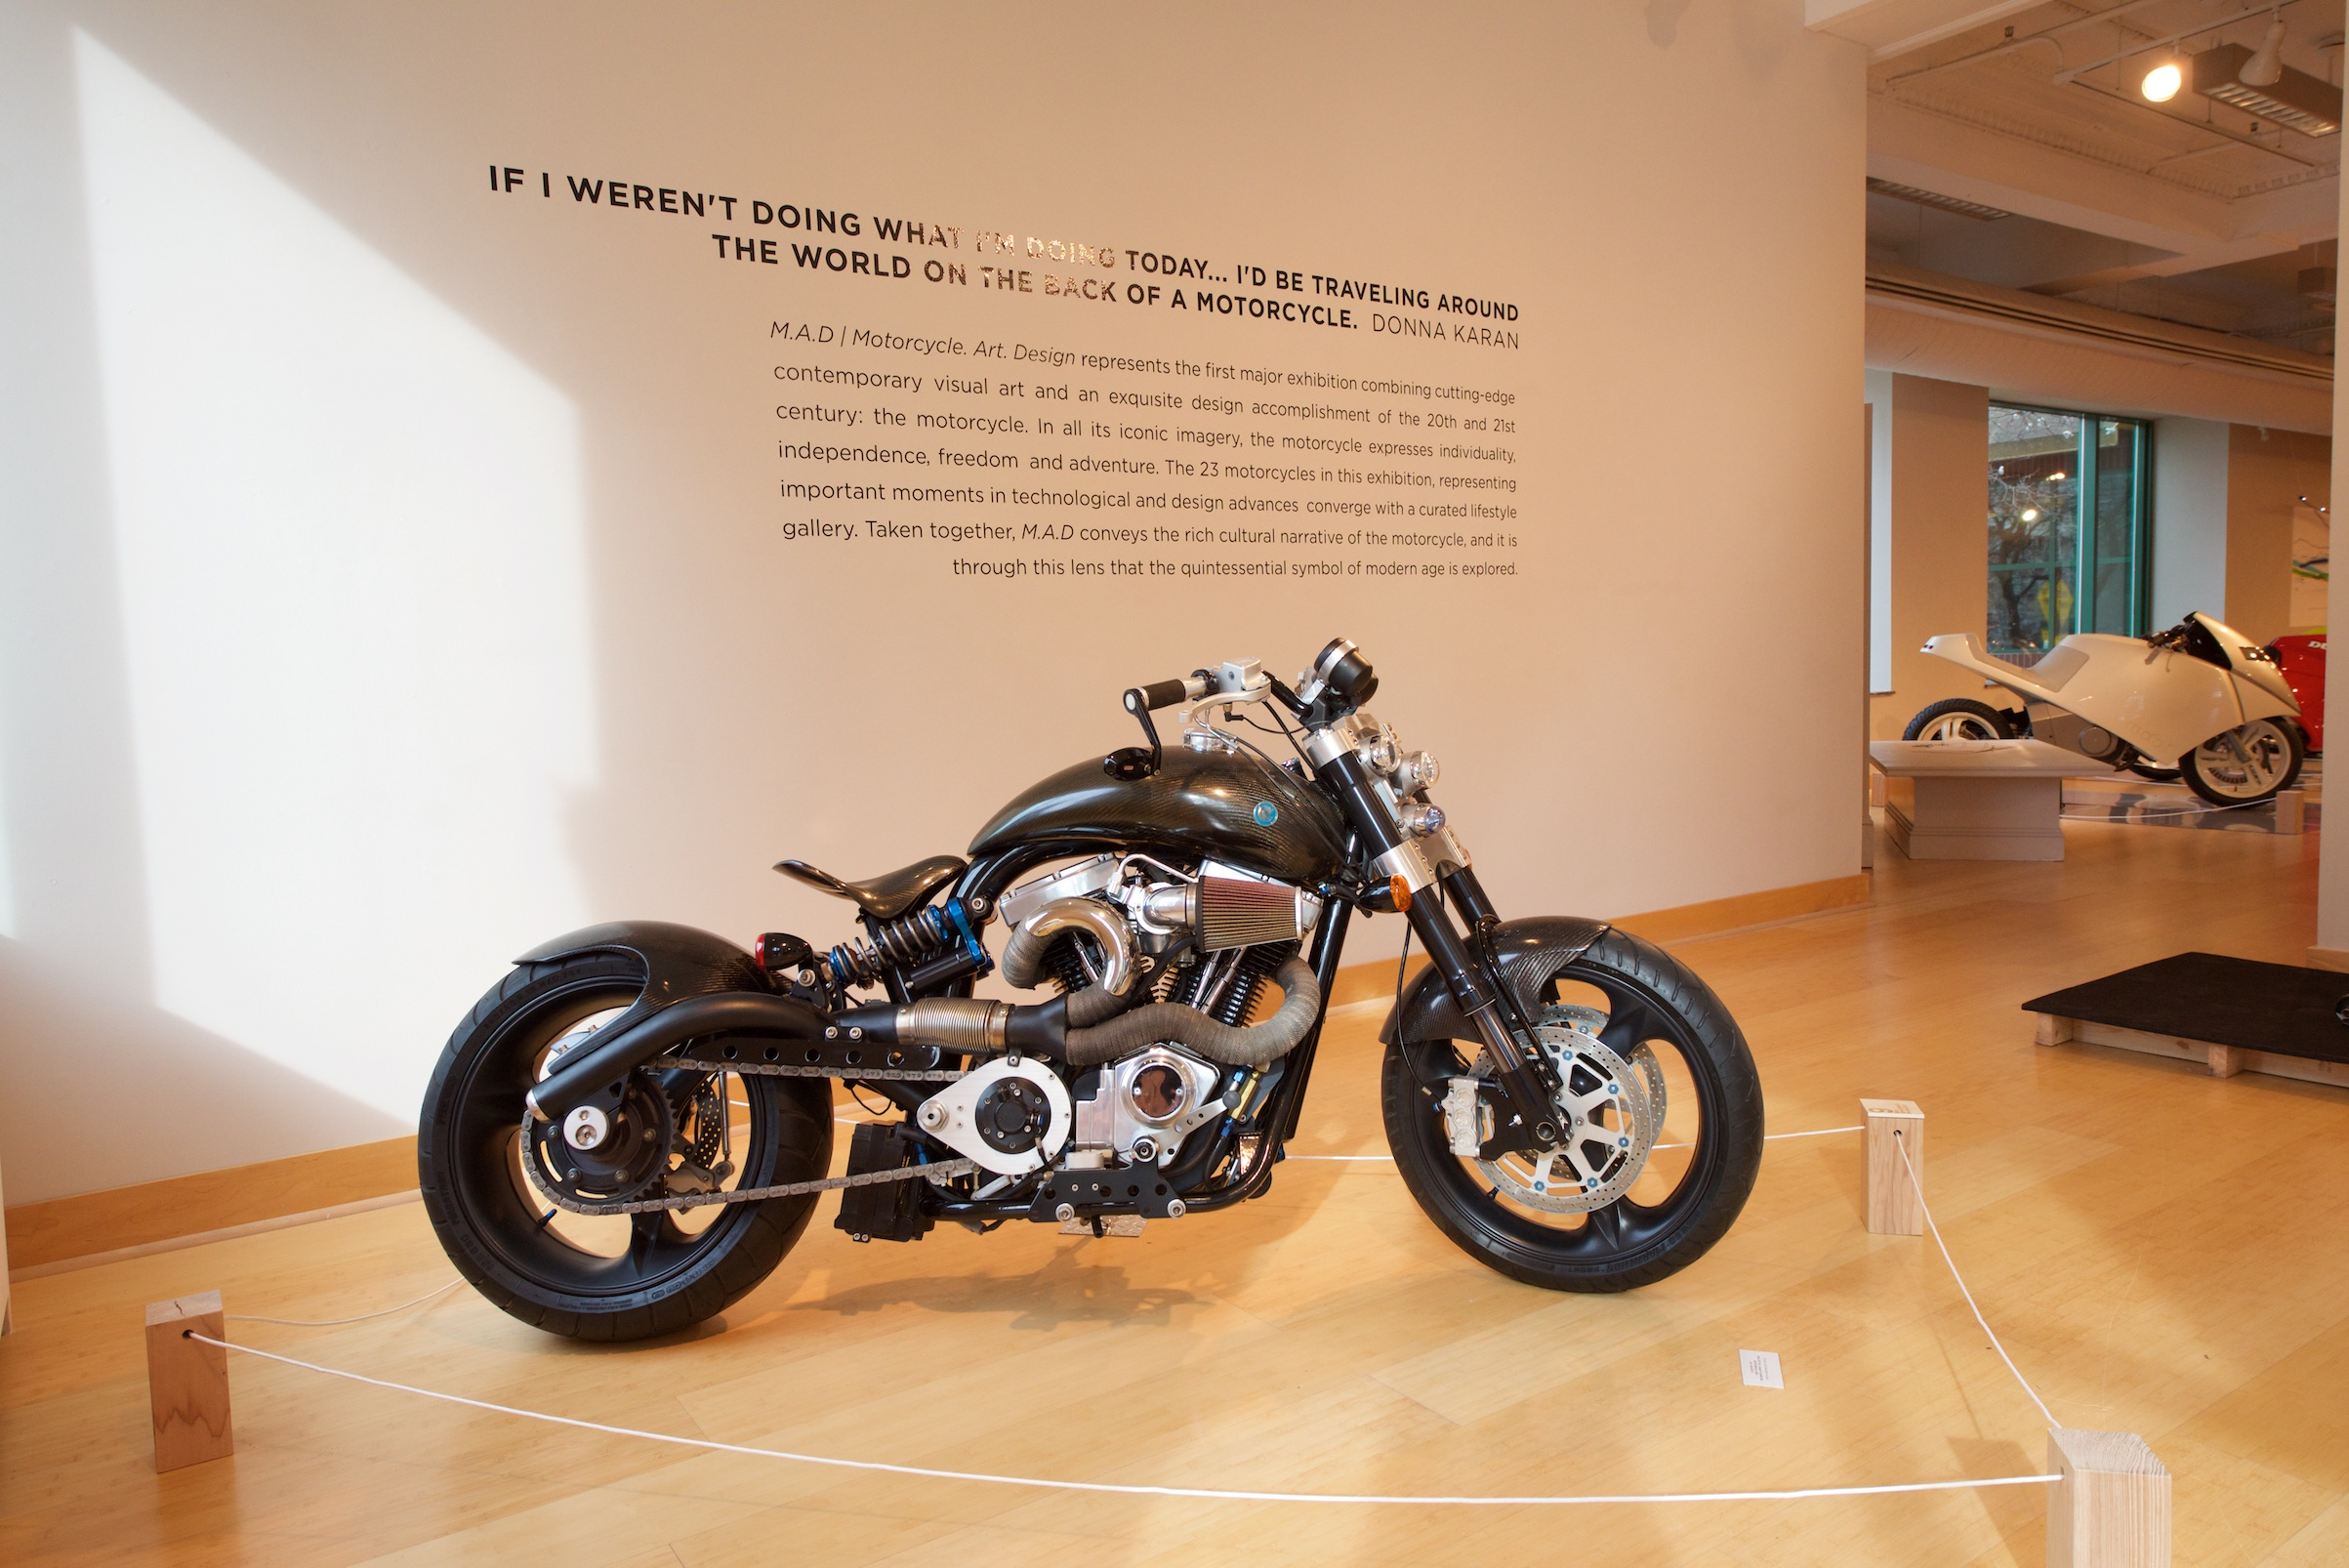 Greenhill Goes Mad For Motorcycles In North Carolina 1975 Harley Davidson Sportster 2005 Confederate F113 Hellcat From The Robert Steinbugler Collection Photo By Lynn H Donovan